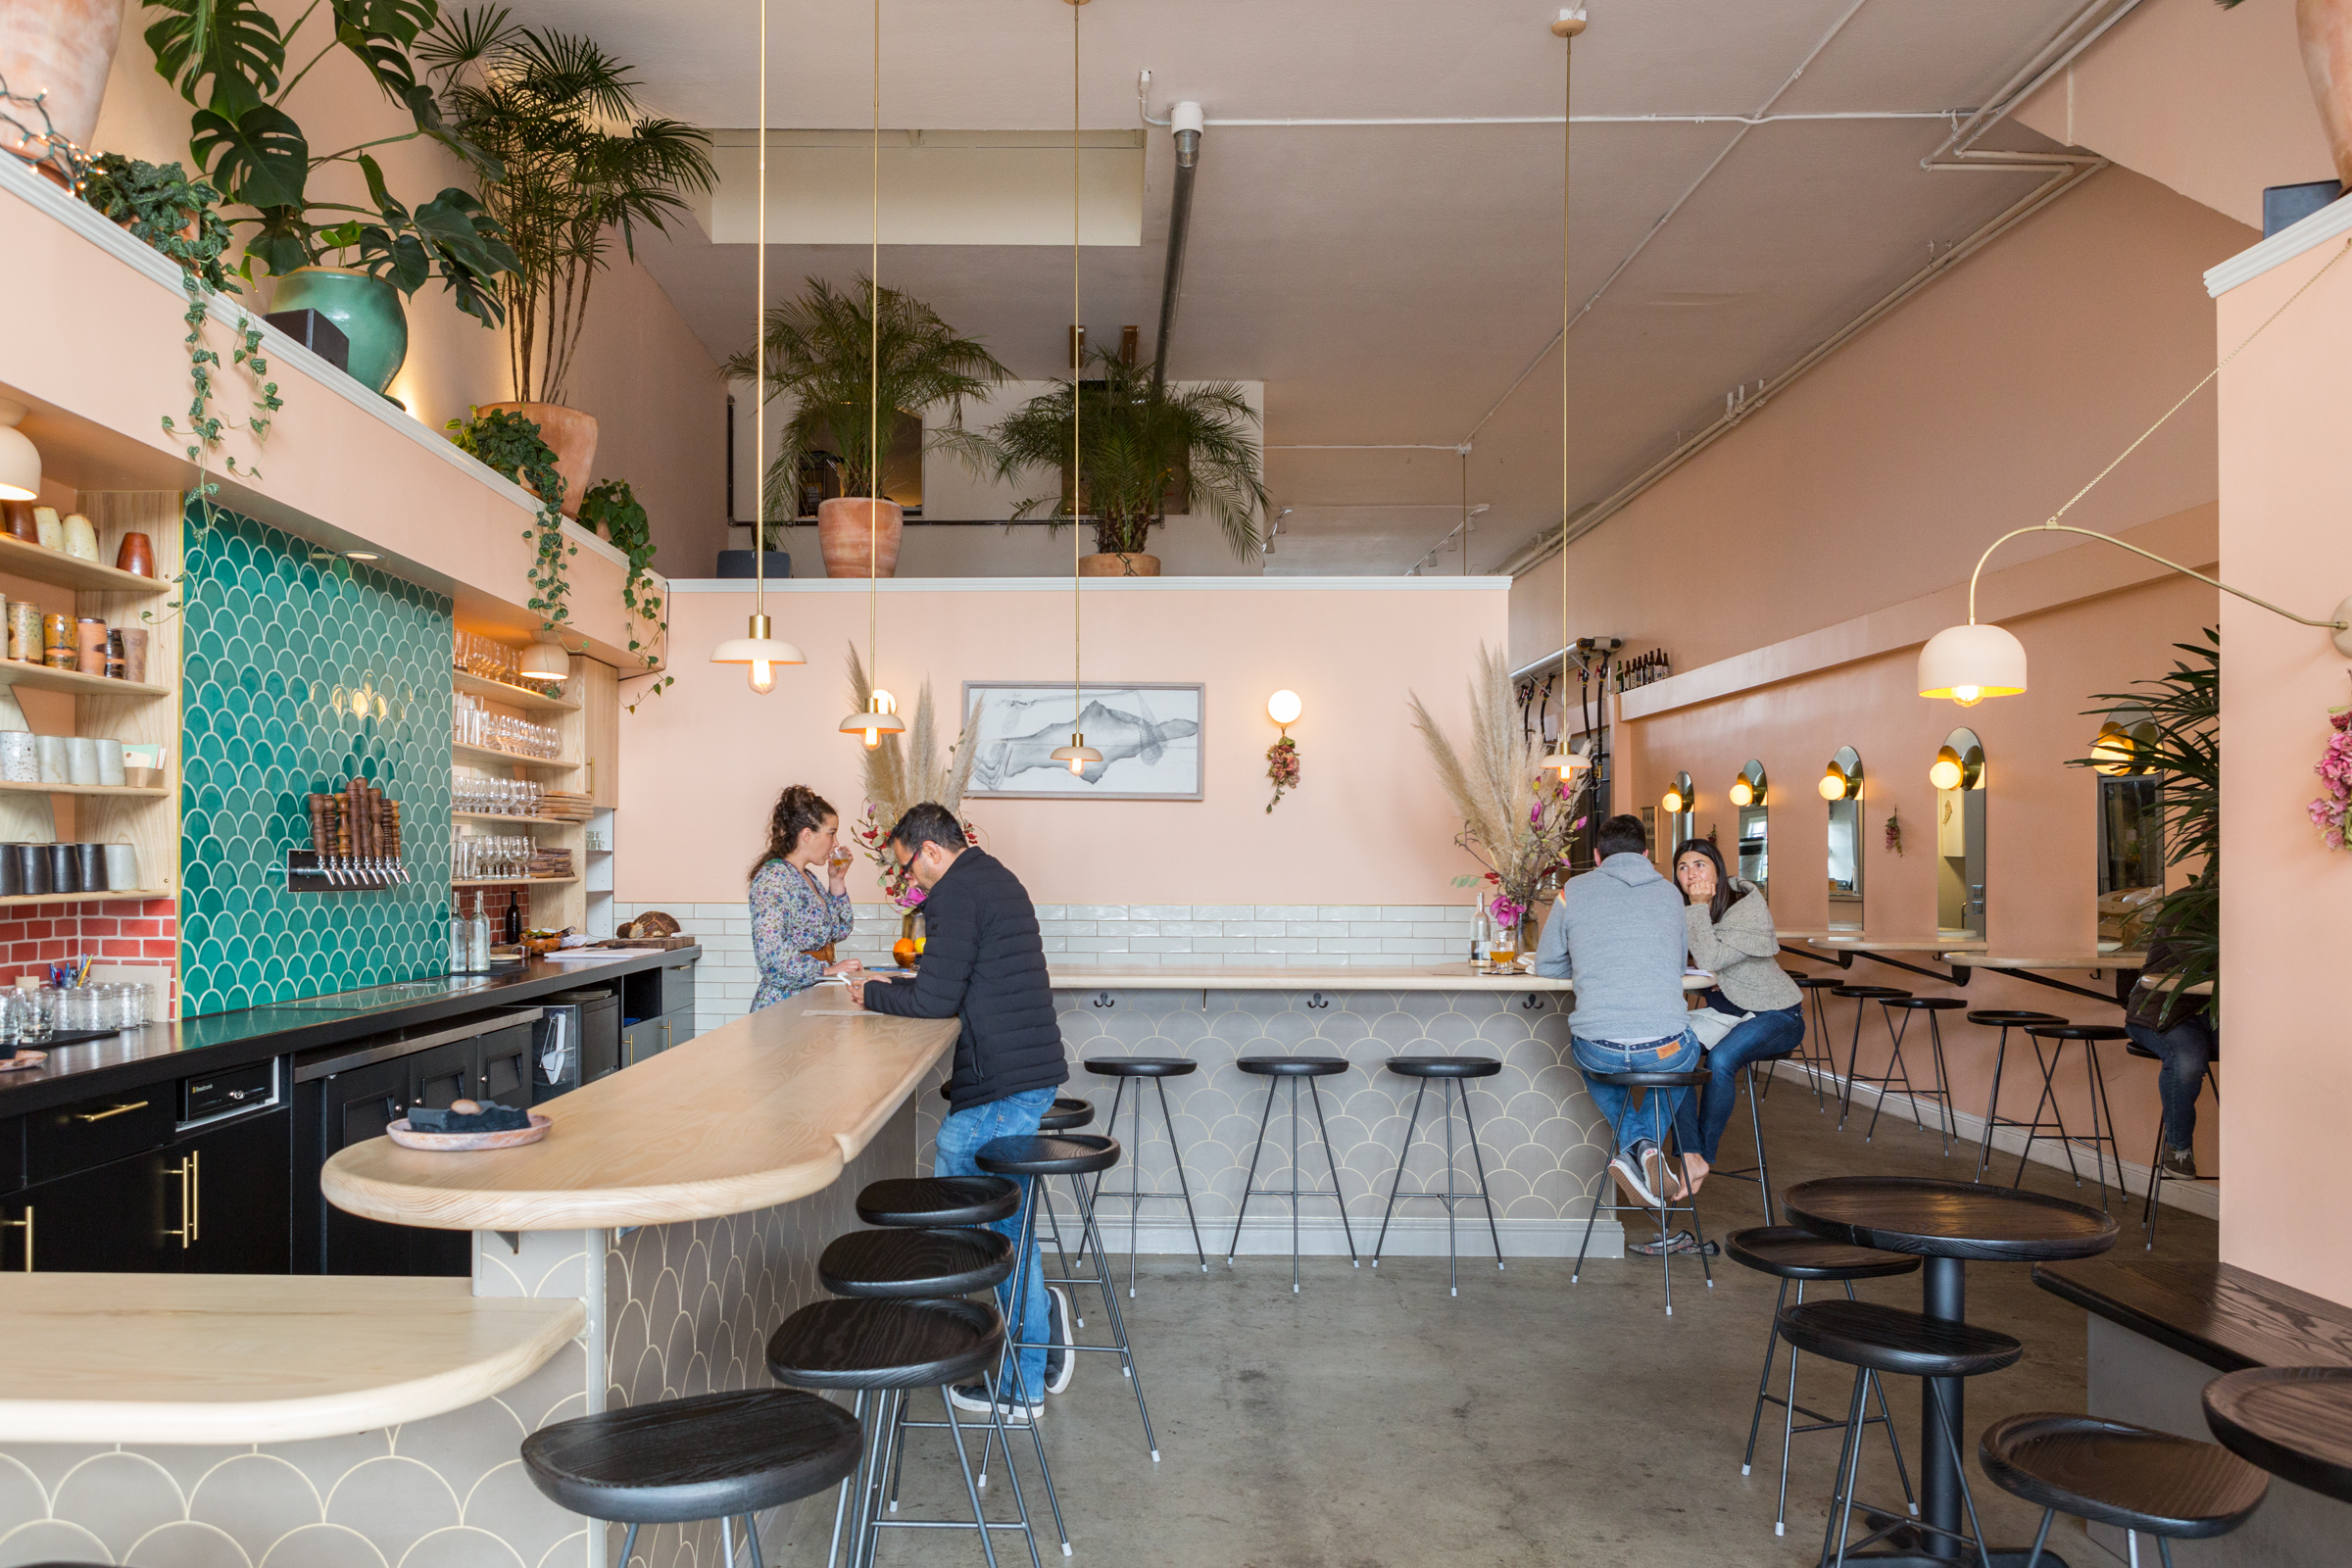 2017_q1_img_hi_res_rights_commercial_roses_taproom_young_american_creative_lauren_andersen_photo_bar_accent_backsplash_emerald_ogee_drop_FC186416_8.jpg?mtime=20181005100254#asset:419629